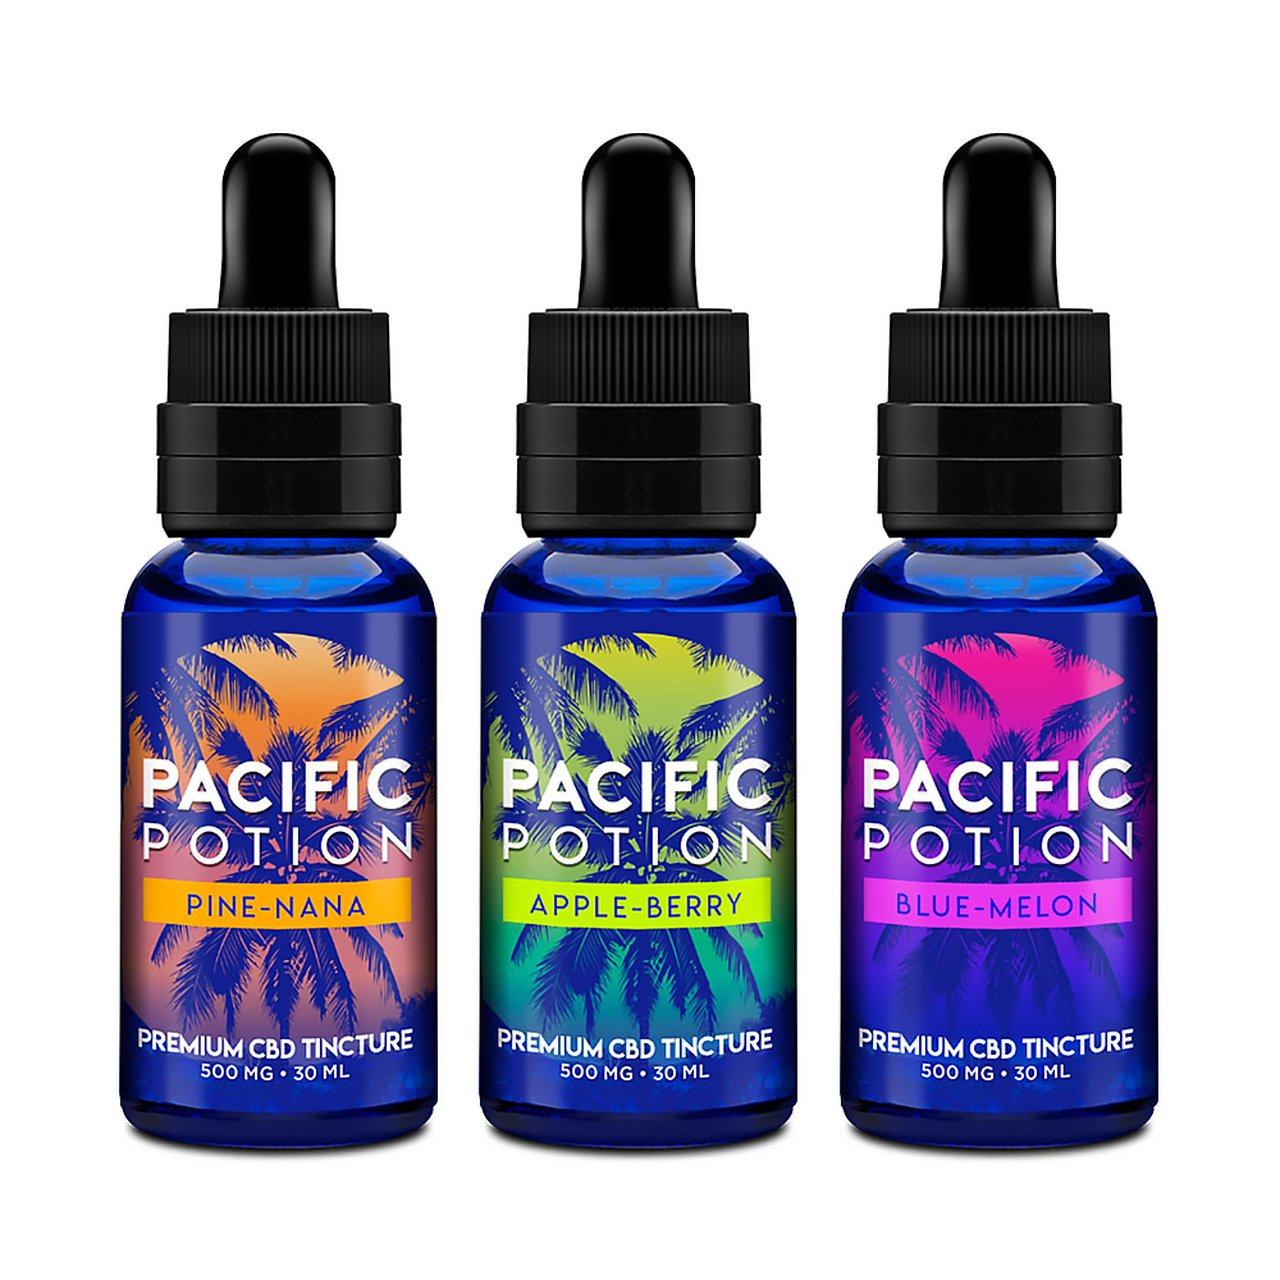 Pacific Potion 250mg CBD Tincture 30mL - Pine-Nana